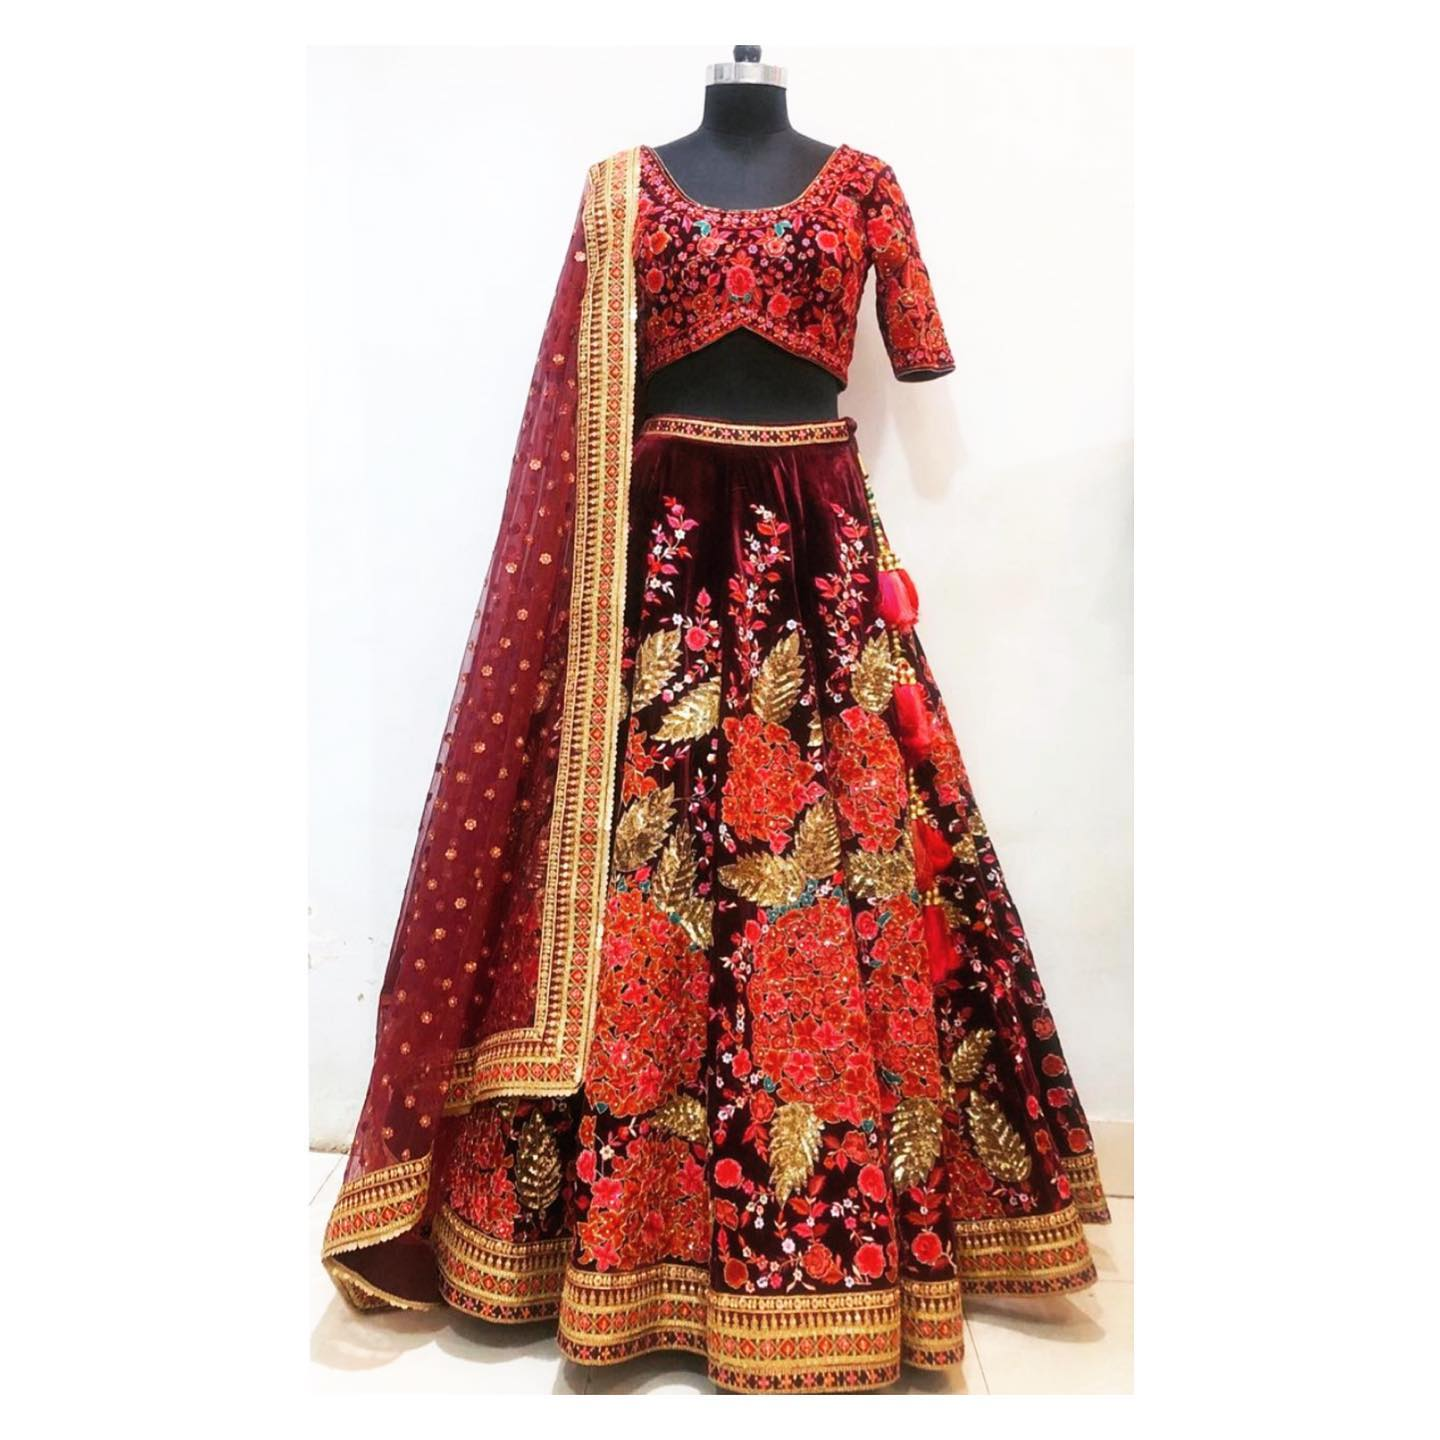 Hand embroidered bridal lehenga in deep maroon velvet.